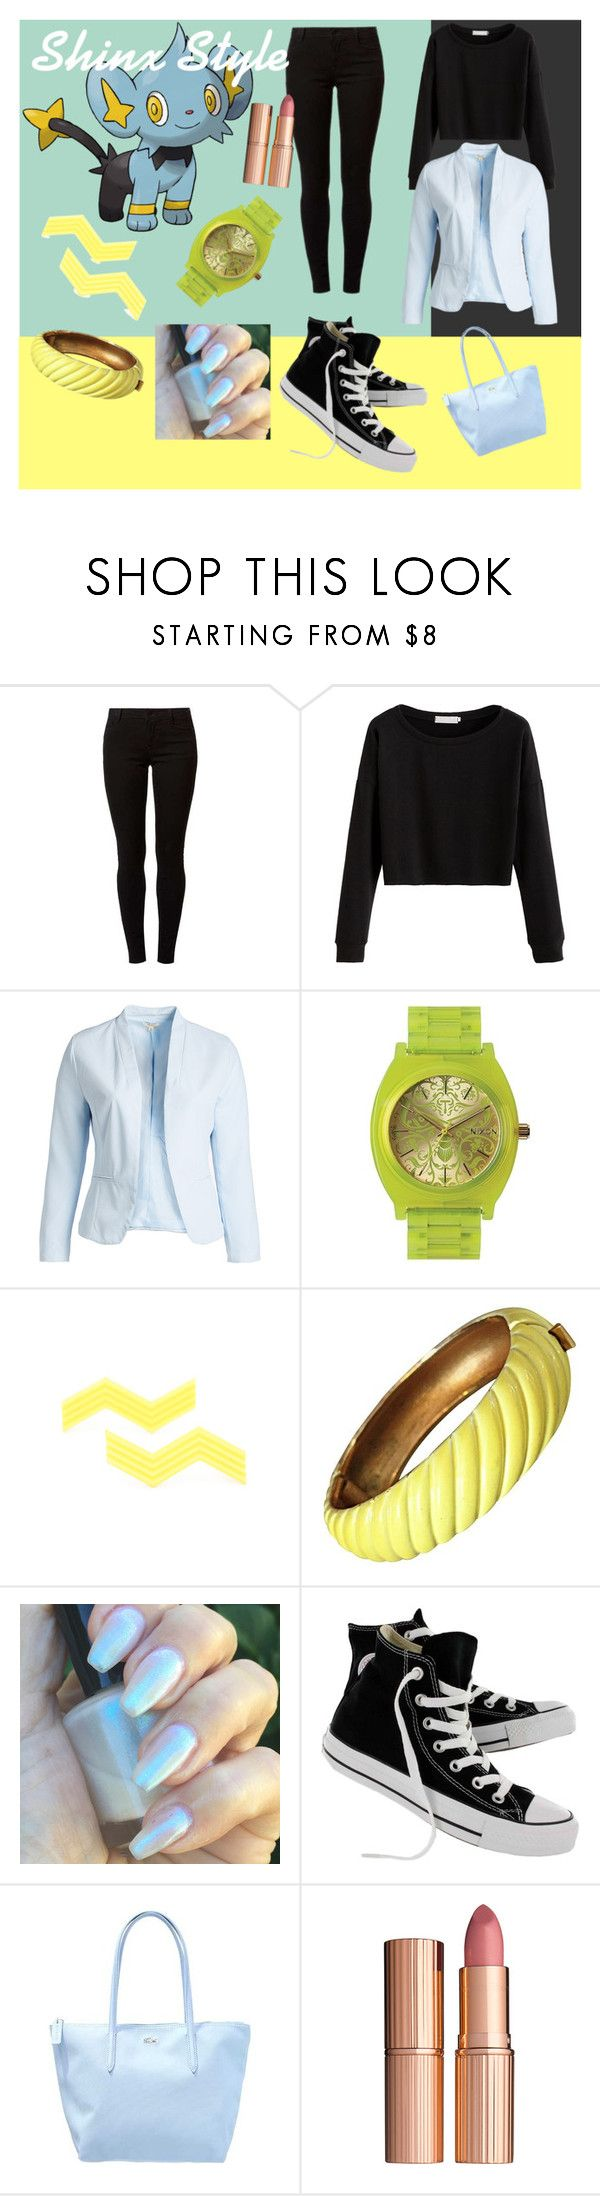 """""""Shinx Style (Pokemon)"""" by secondhandbag ❤ liked on Polyvore featuring Dorothy Perkins, Blu Pepper, Nixon, Trifari, Converse, Lacoste, Charlotte Tilbury and plus size clothing"""